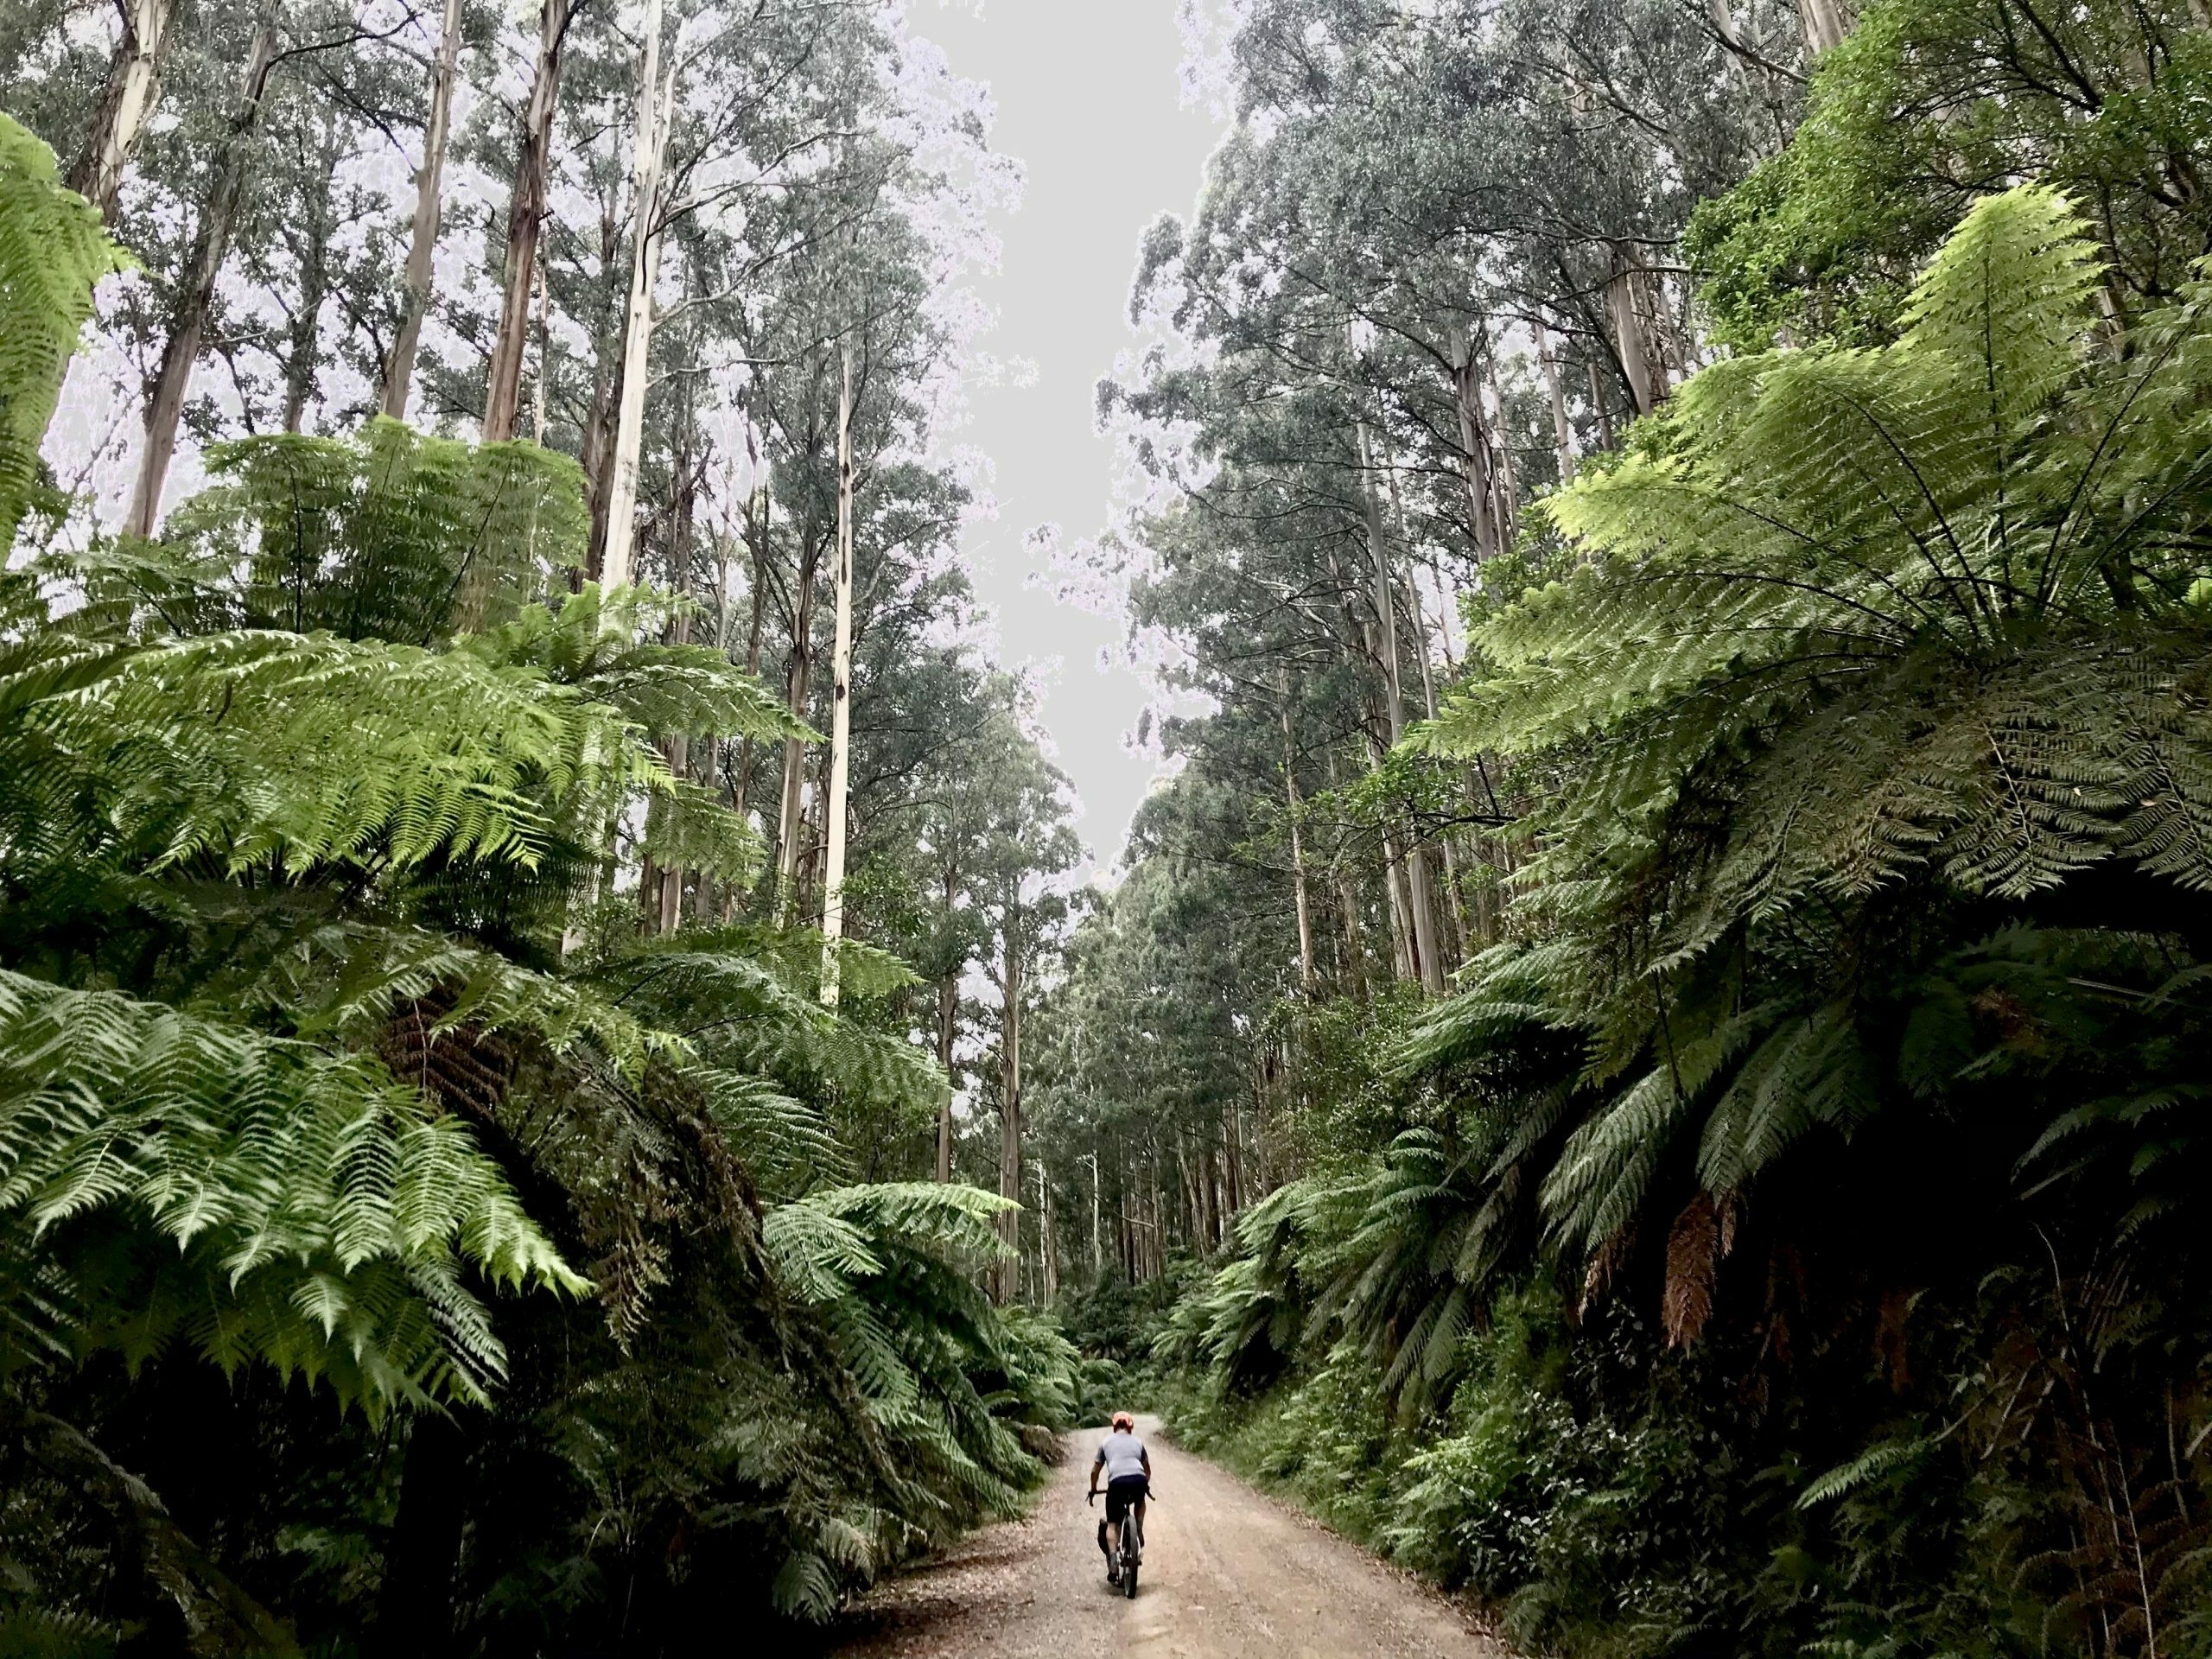 Ferns of the Victoria divide 550 bikepacking race